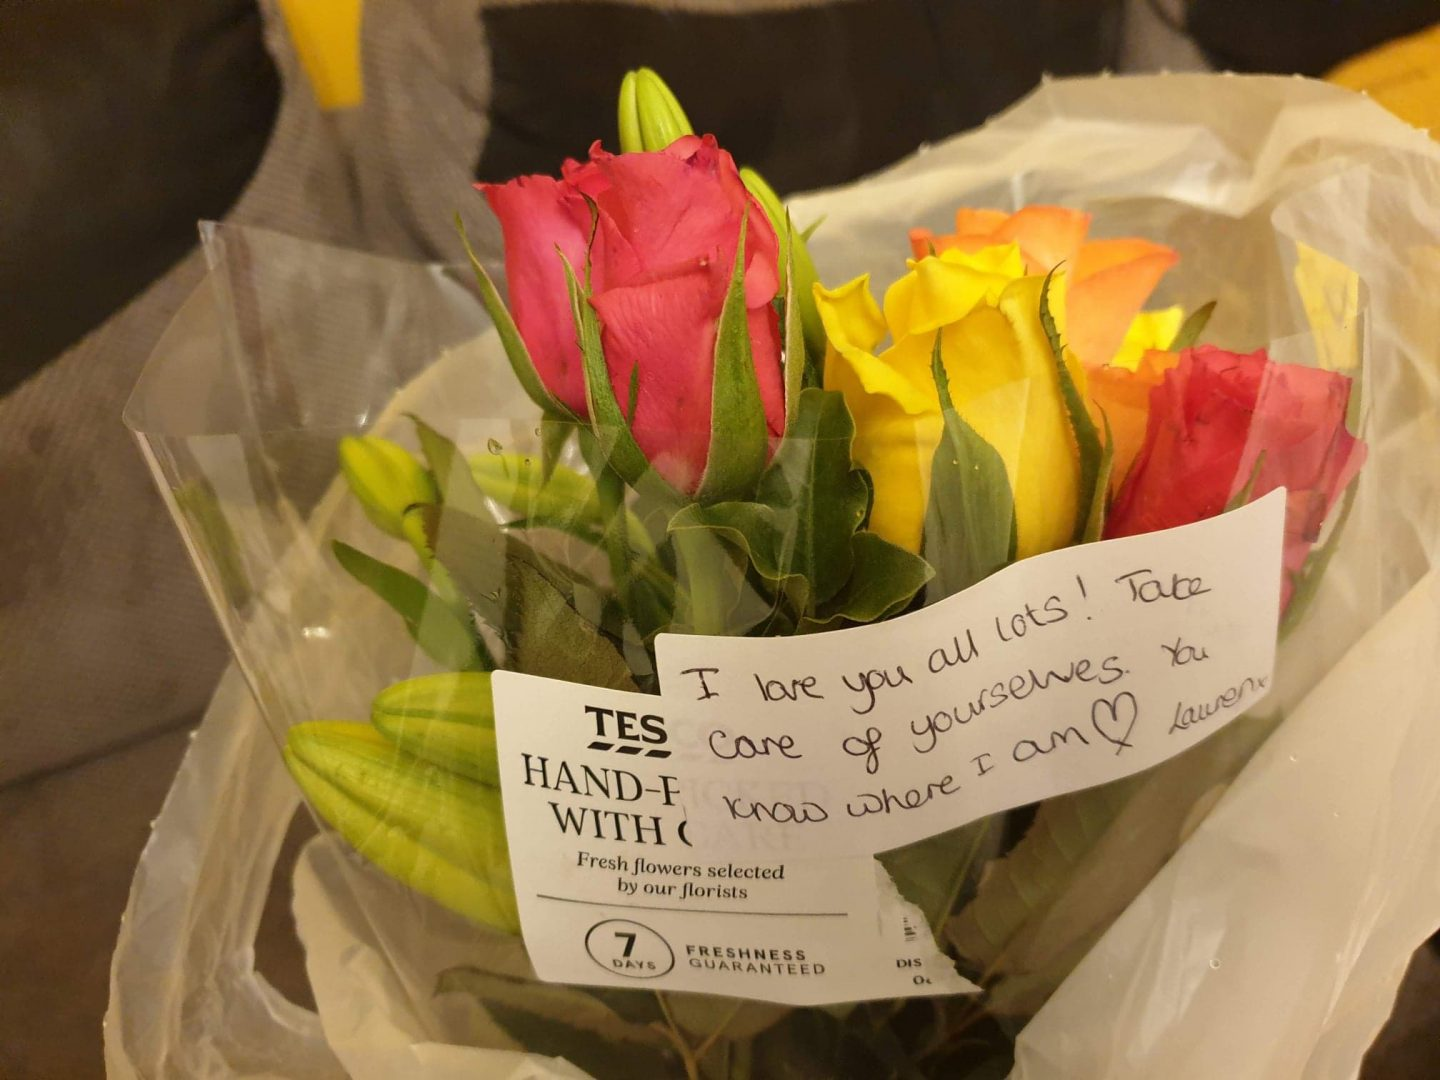 Flowers sent from friends after miscarriage